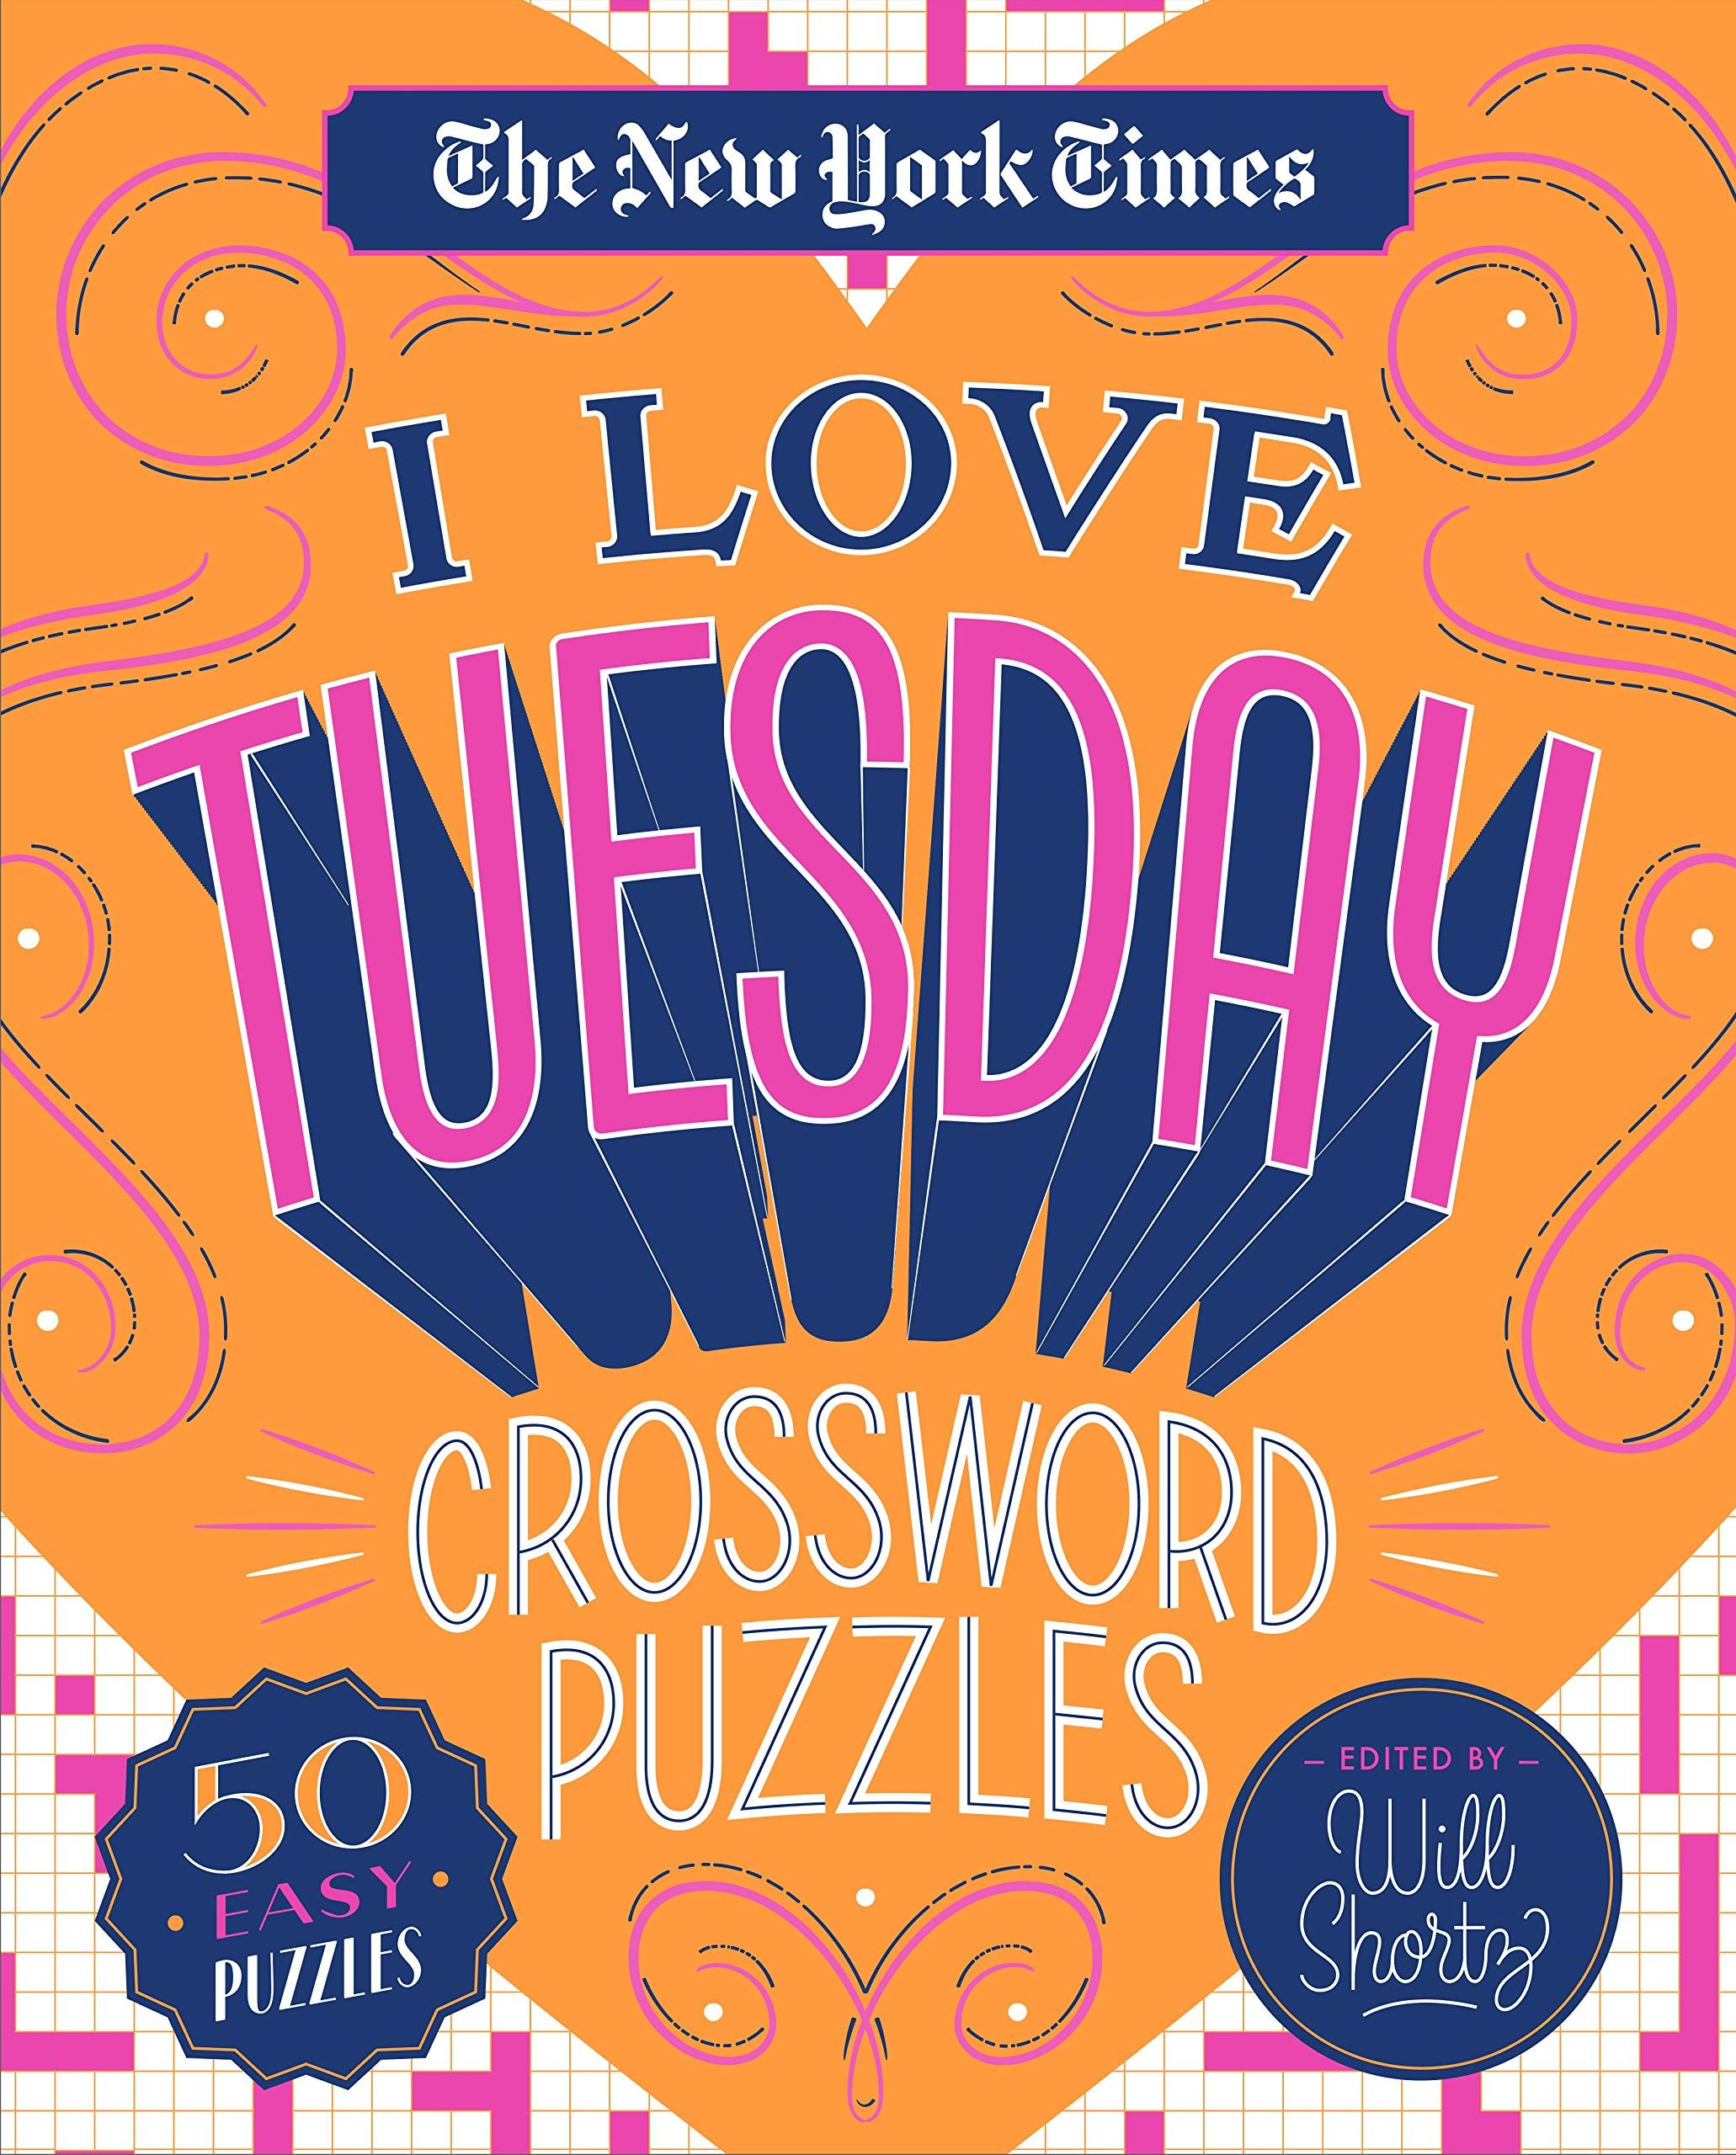 The New York Times I Love Tuesday Crossword Puzzles: 50 ...